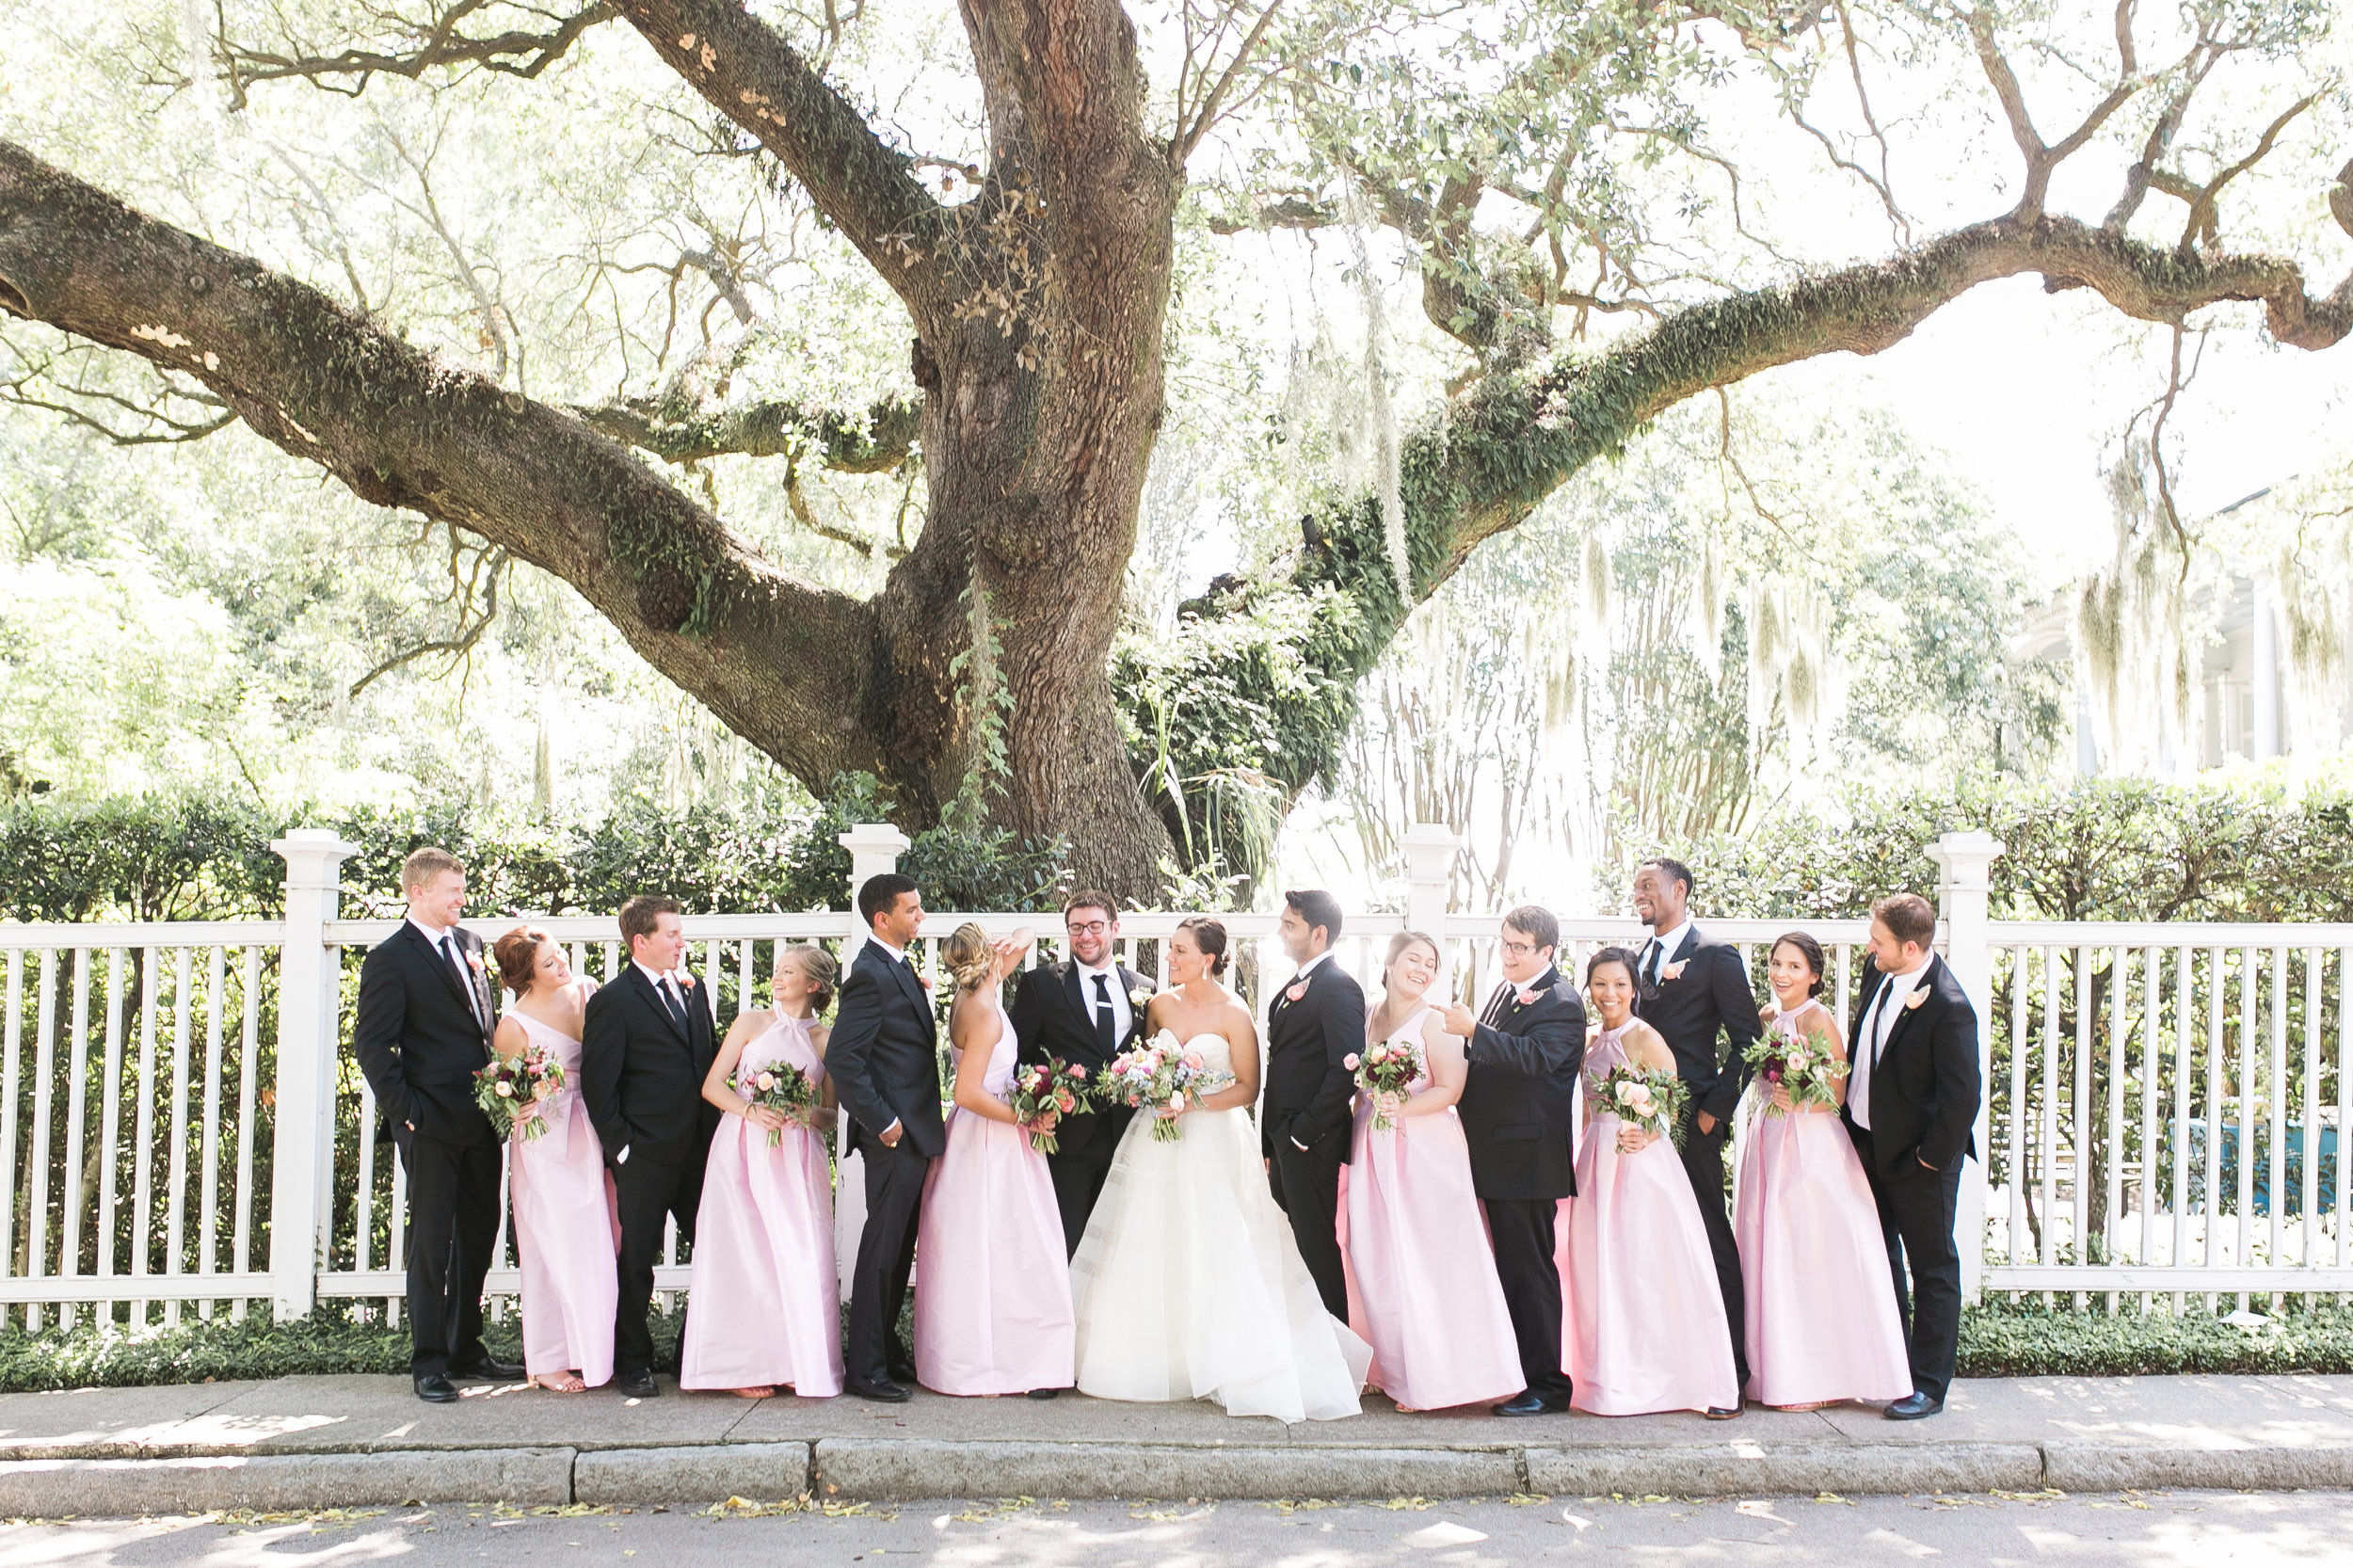 Phoebe & Derek's Thomas Bennett House wedding in Charleston, SC  Colorful outdoor reception at The Thomas Bennett House wedding in Charleston, SC  //  photographed by Jenna Weddings  Traditional wedding ceremony at Cathedral of St. John the Baptist in Charleston, SC  //  A Lowcountry Wedding Magazine & Blog